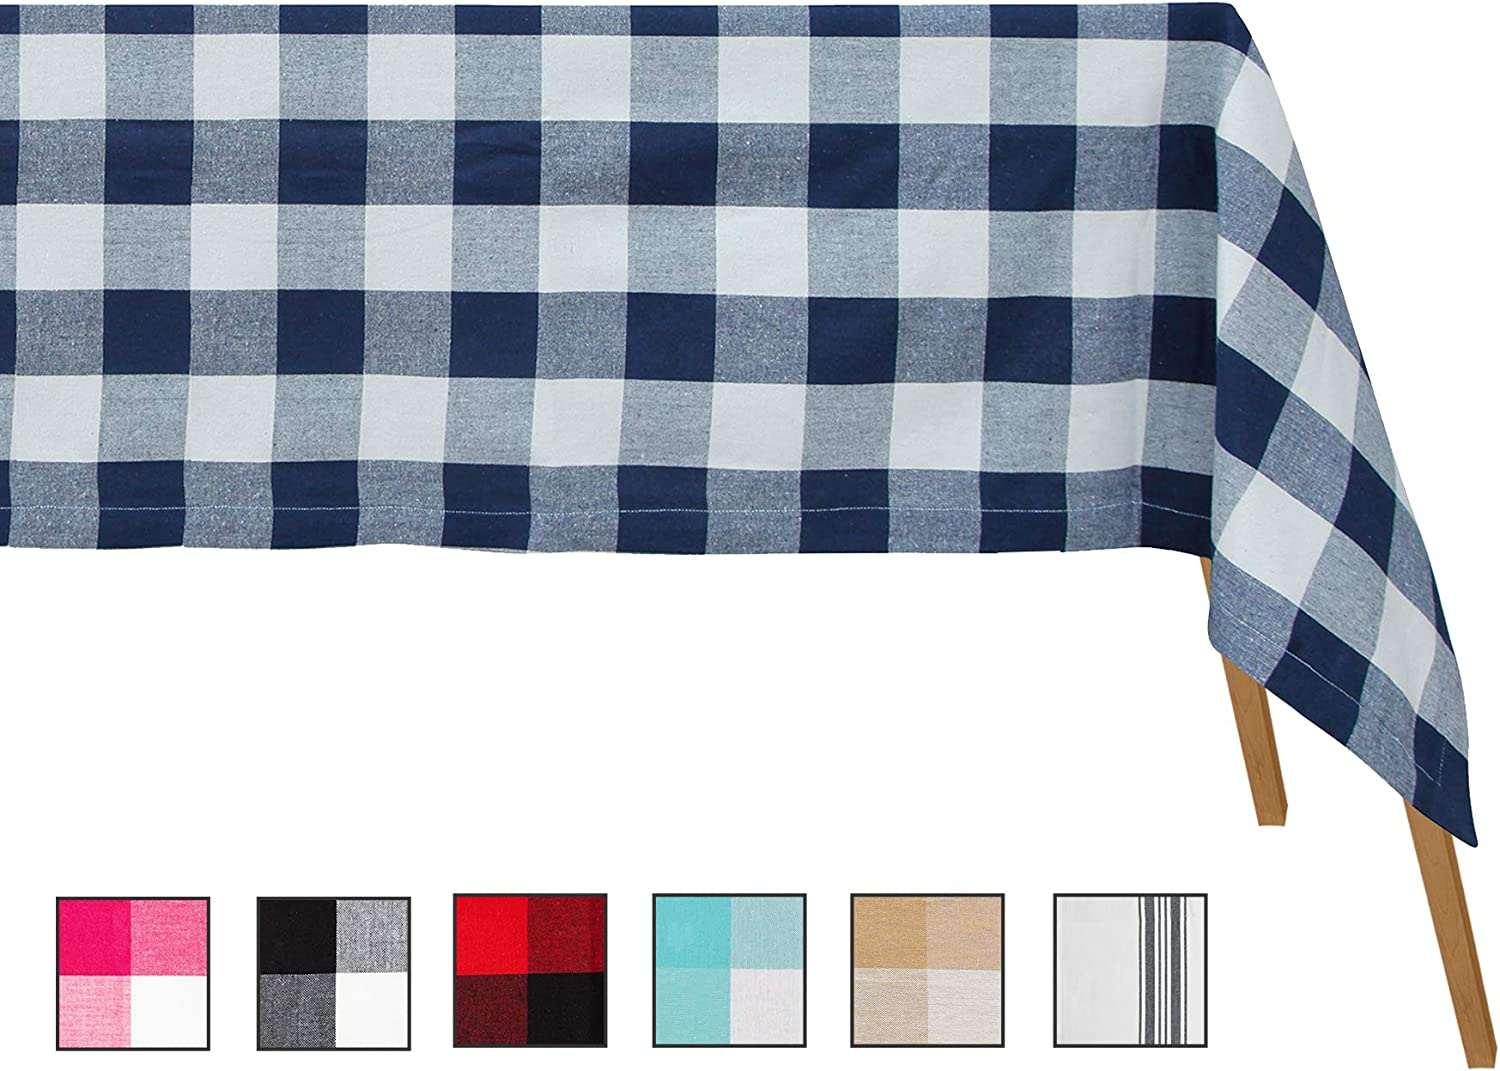 Buffalo Plaid Tablecloth - Cotton Blue Beauty Regular discount products Tablec